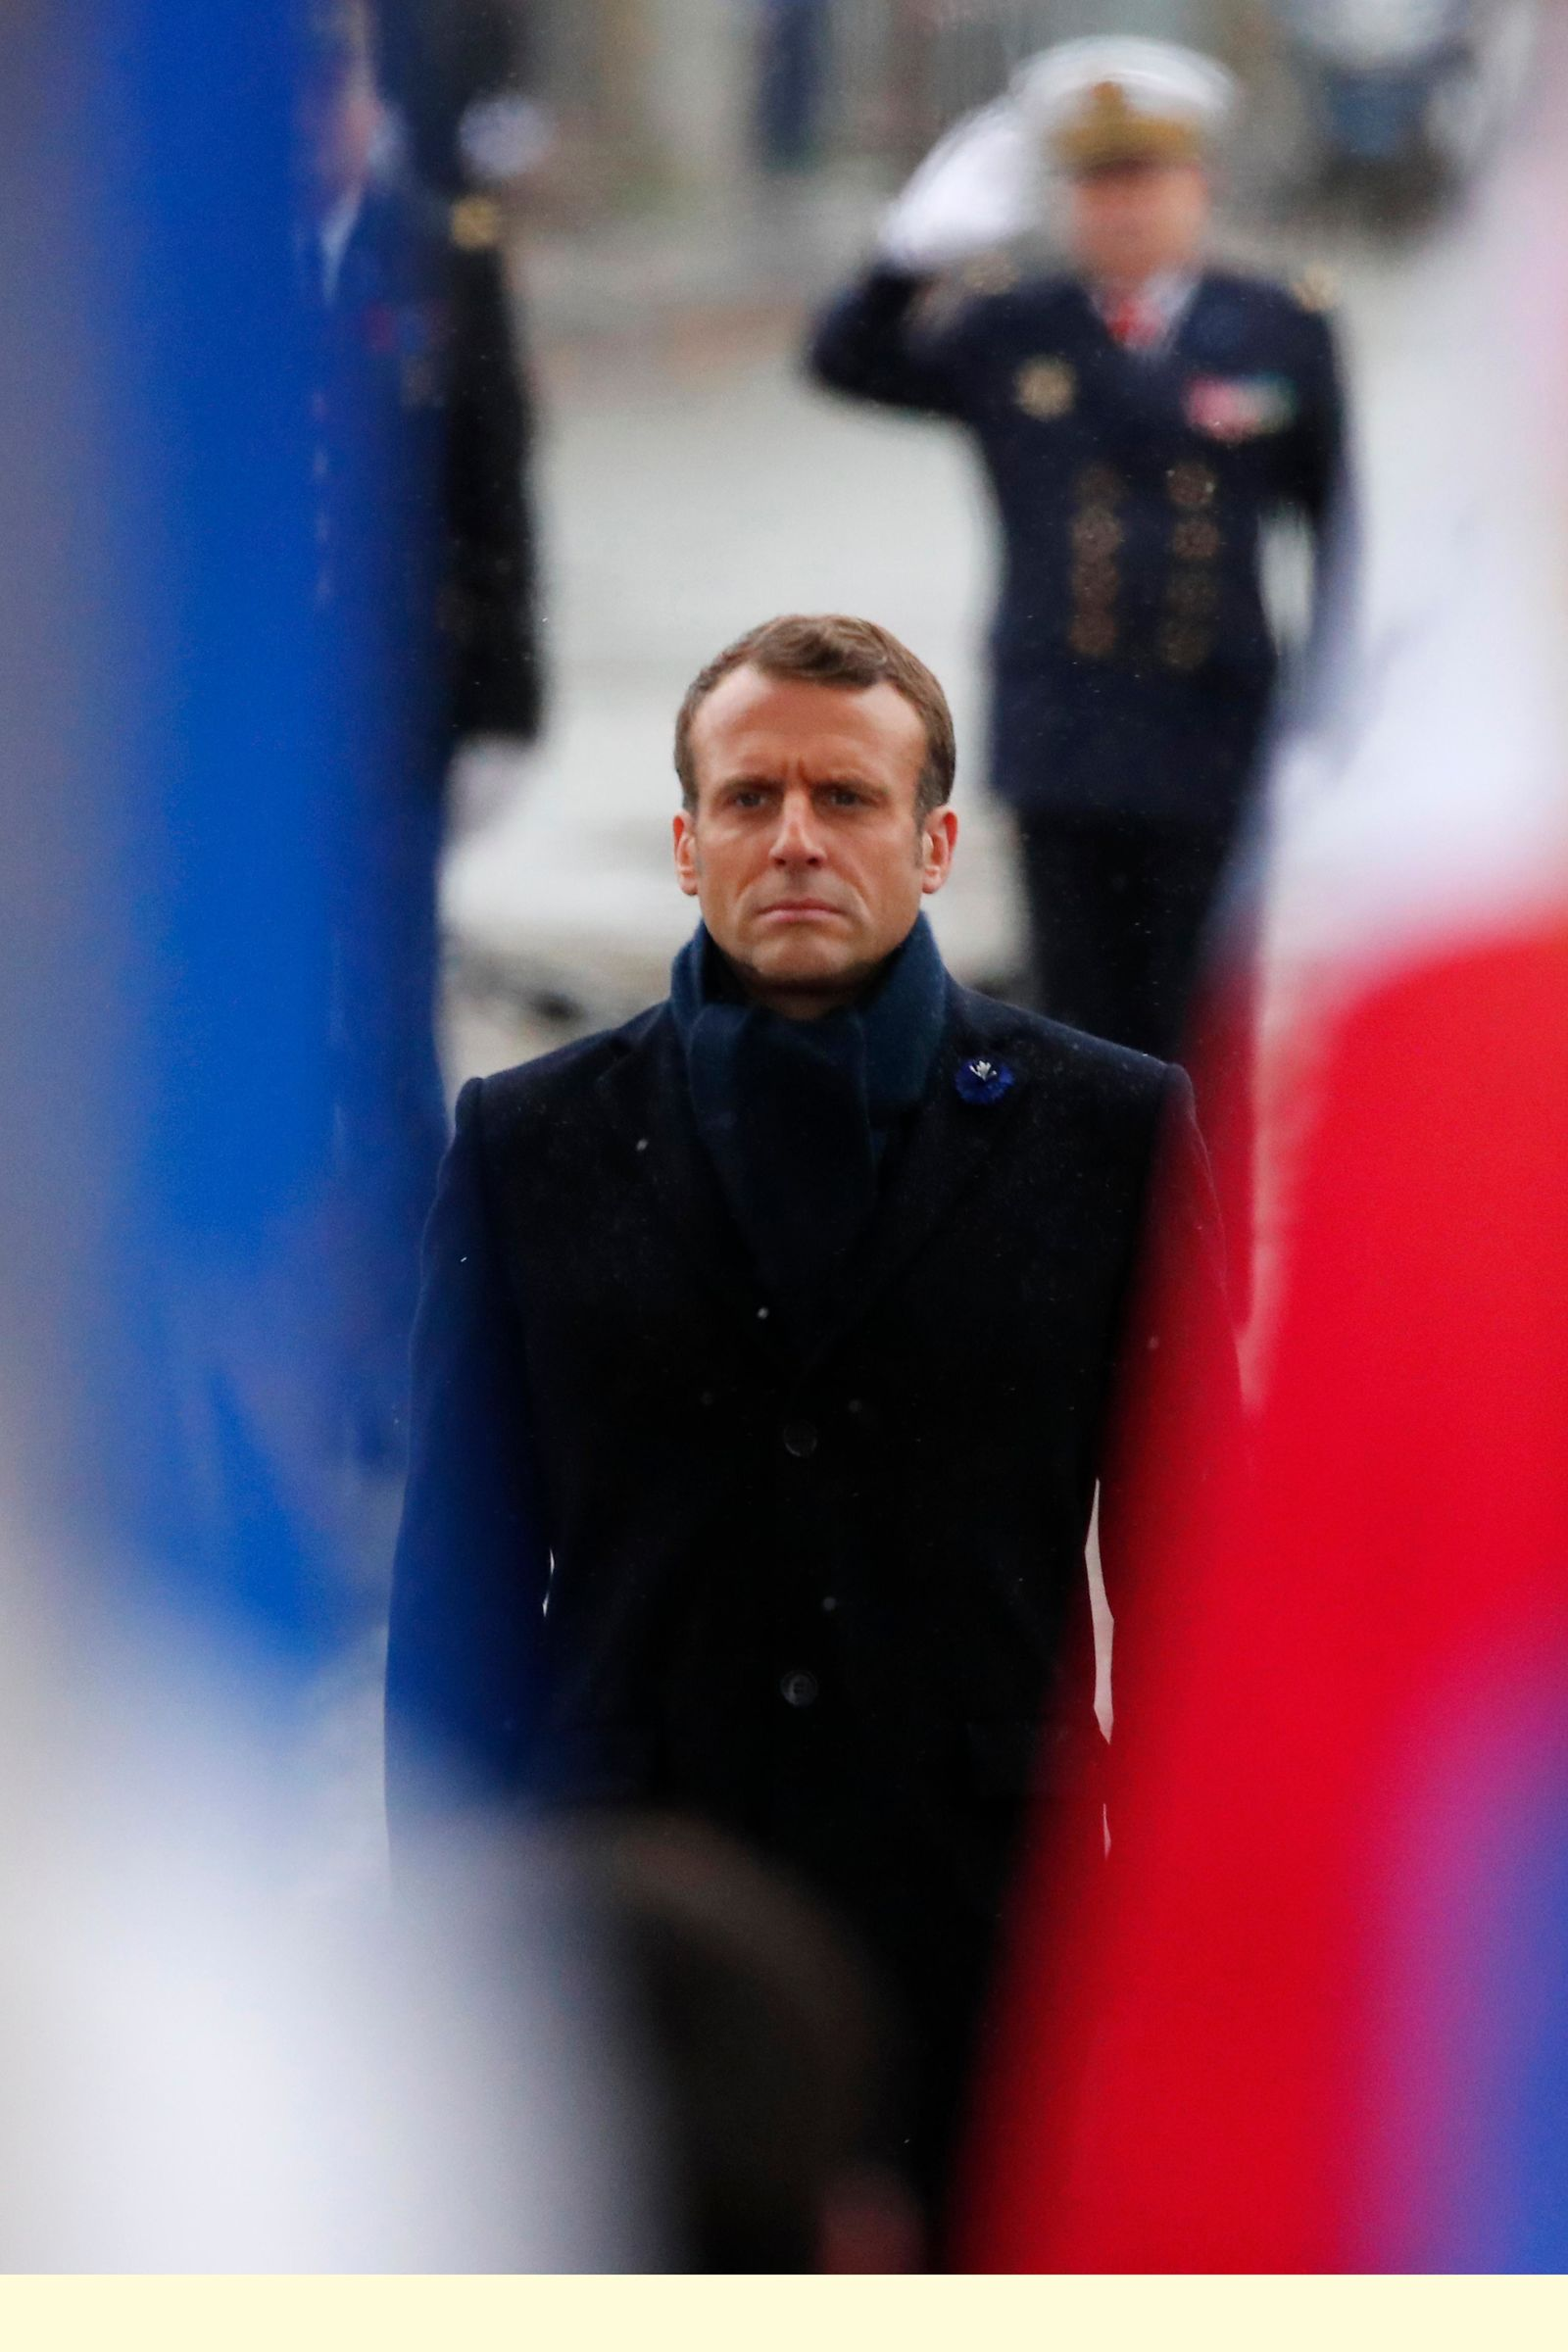 French President Emmanuel Macron stands at attention at the tomb of the Unknown Soldier under the Arc de Triomphe in Paris Monday Nov. 11, 2019 during commemorations marking the 101st anniversary of the 1918 armistice, ending World War I. (AP Photo/Francois Mori, Pool)